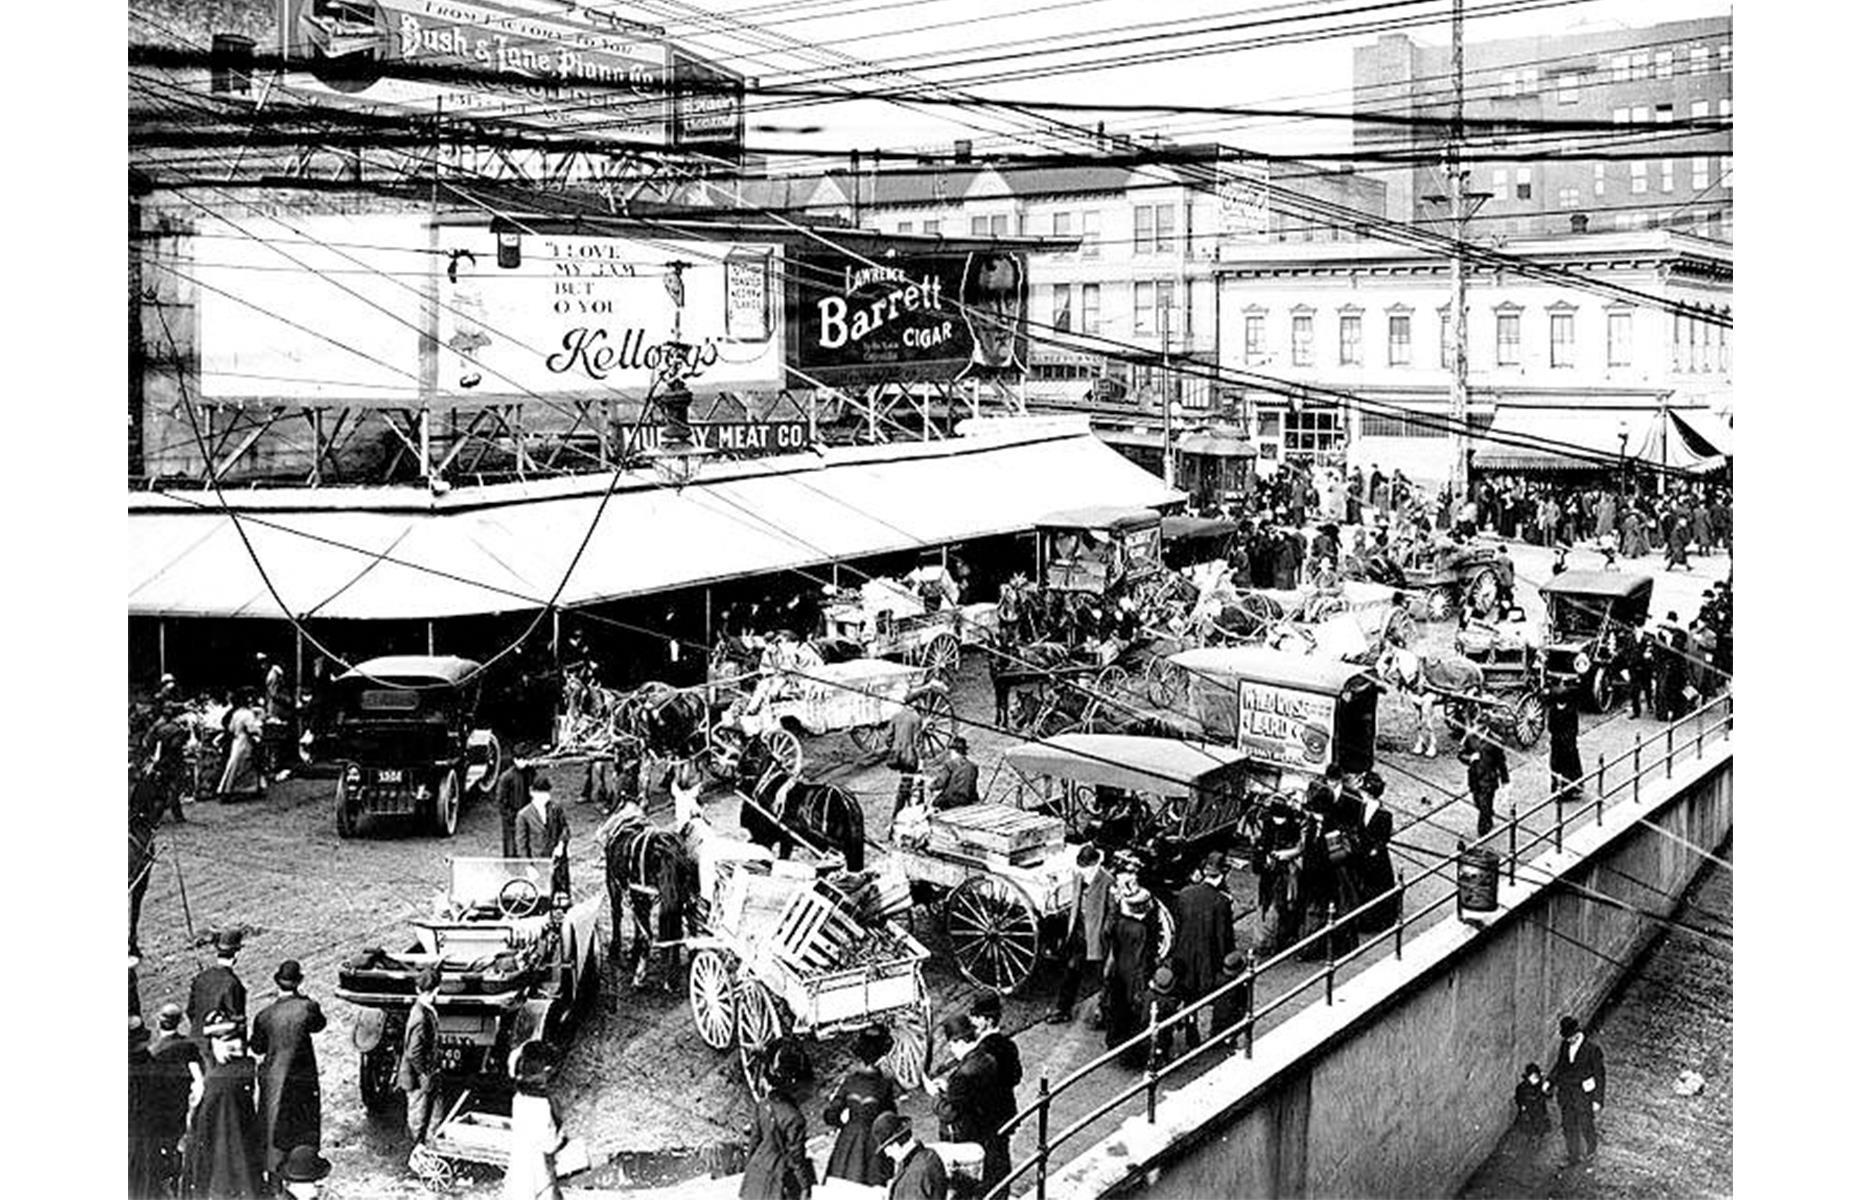 Slide 19 of 51: Seattle's iconic Pike Place Market was created in 1907 to meet the city's demand for fresh food, by inviting farmers to bring their wagons and sell it directly. Pictured here in 1910, the market is a far cry from the tourist-thronged site of today, where craft stalls, indie boutiques and hip foodie spots sit alongside the traditional fruit and veg stalls.